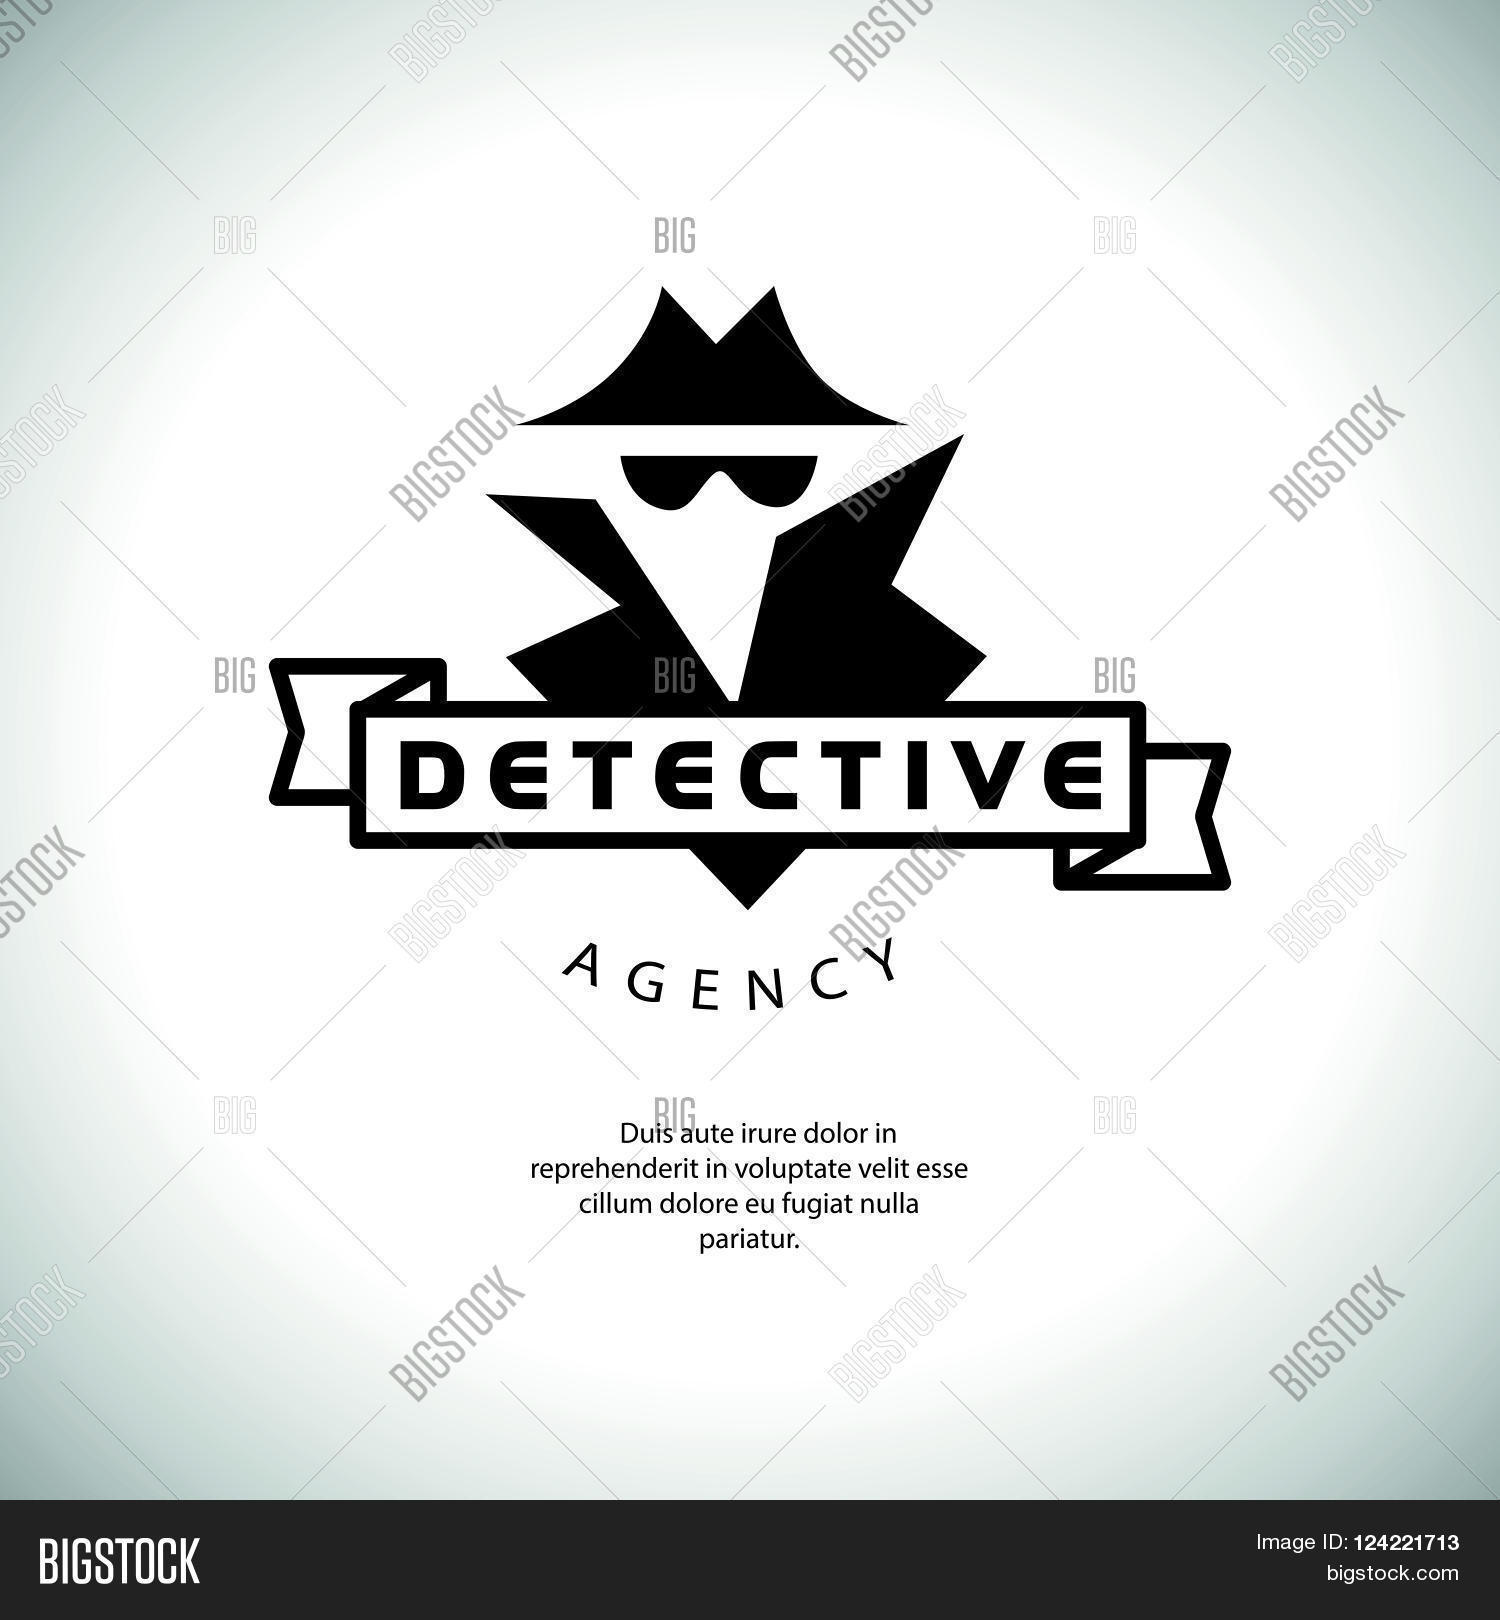 Flat Detective Agency Vector & Photo (Free Trial) | Bigstock